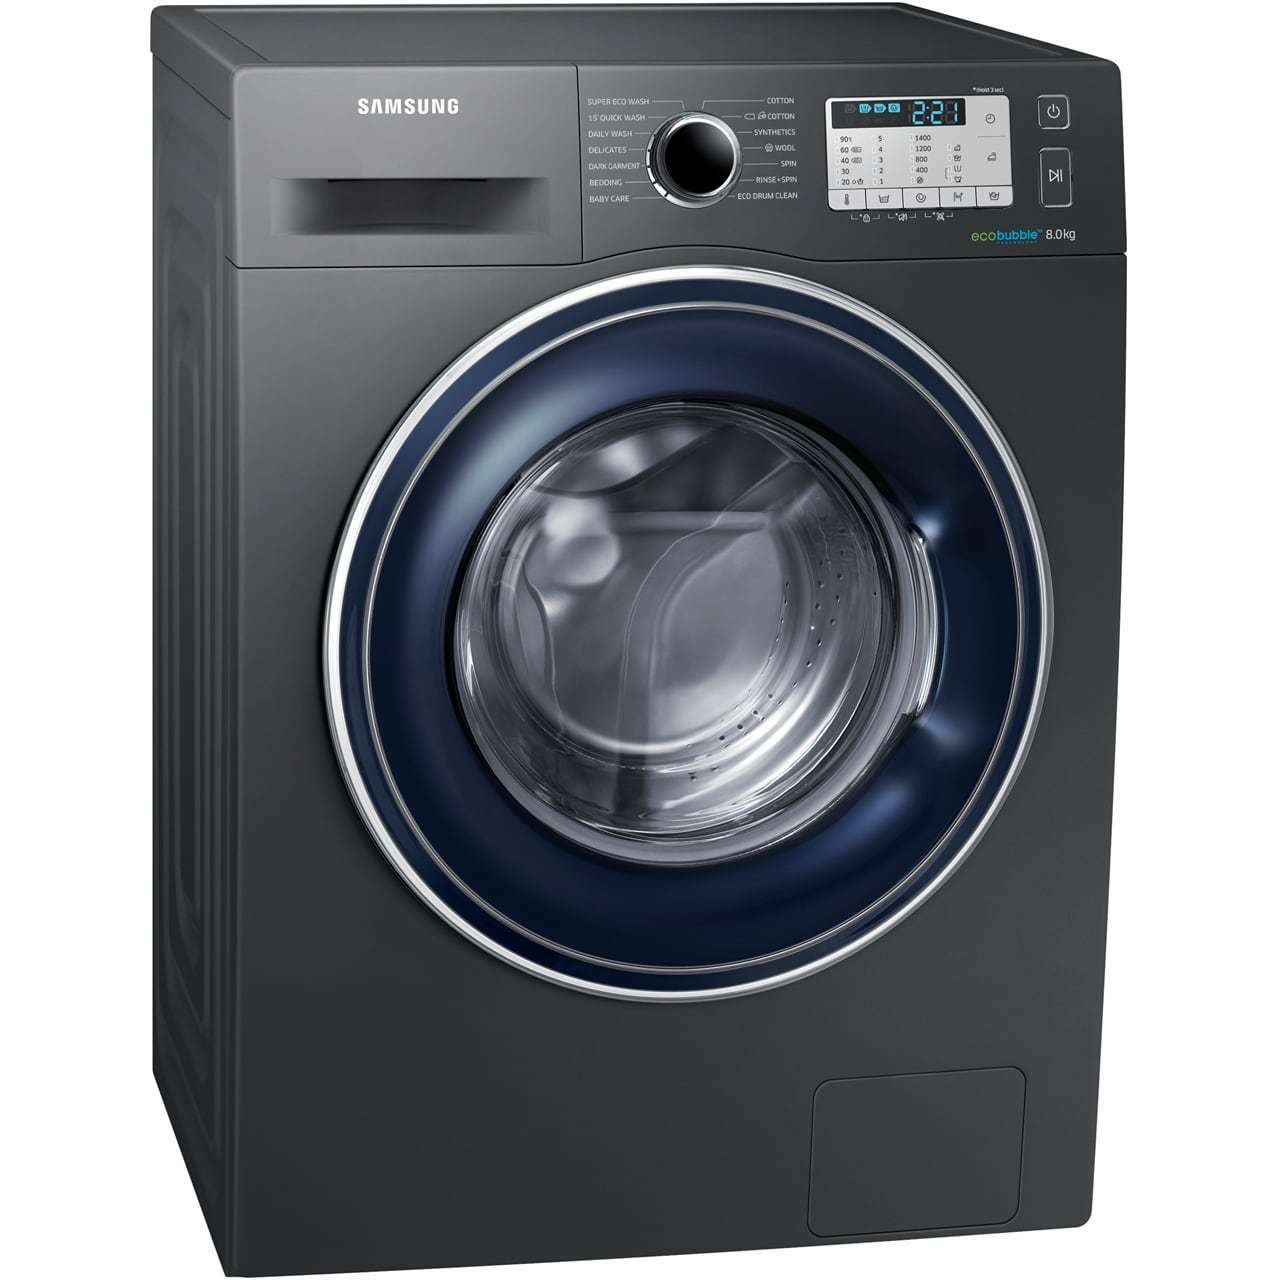 Samsung  A+++ Rated 8Kg 1400 RPM Washing Machine